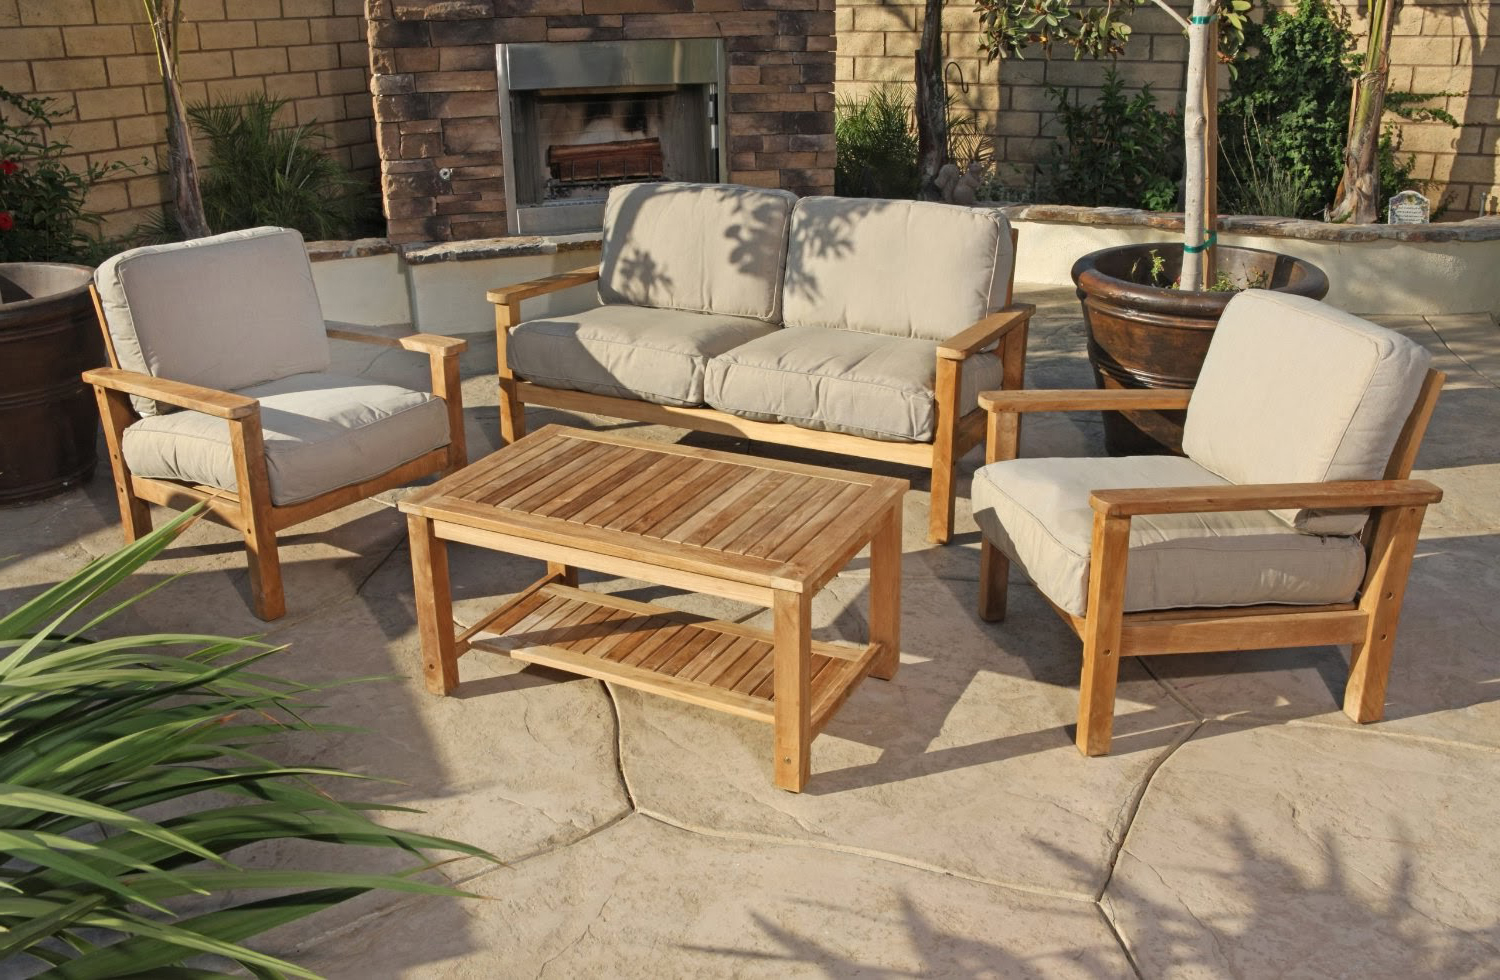 teak patio furniture teak-patio-furniture-quinju.com rnsyevr